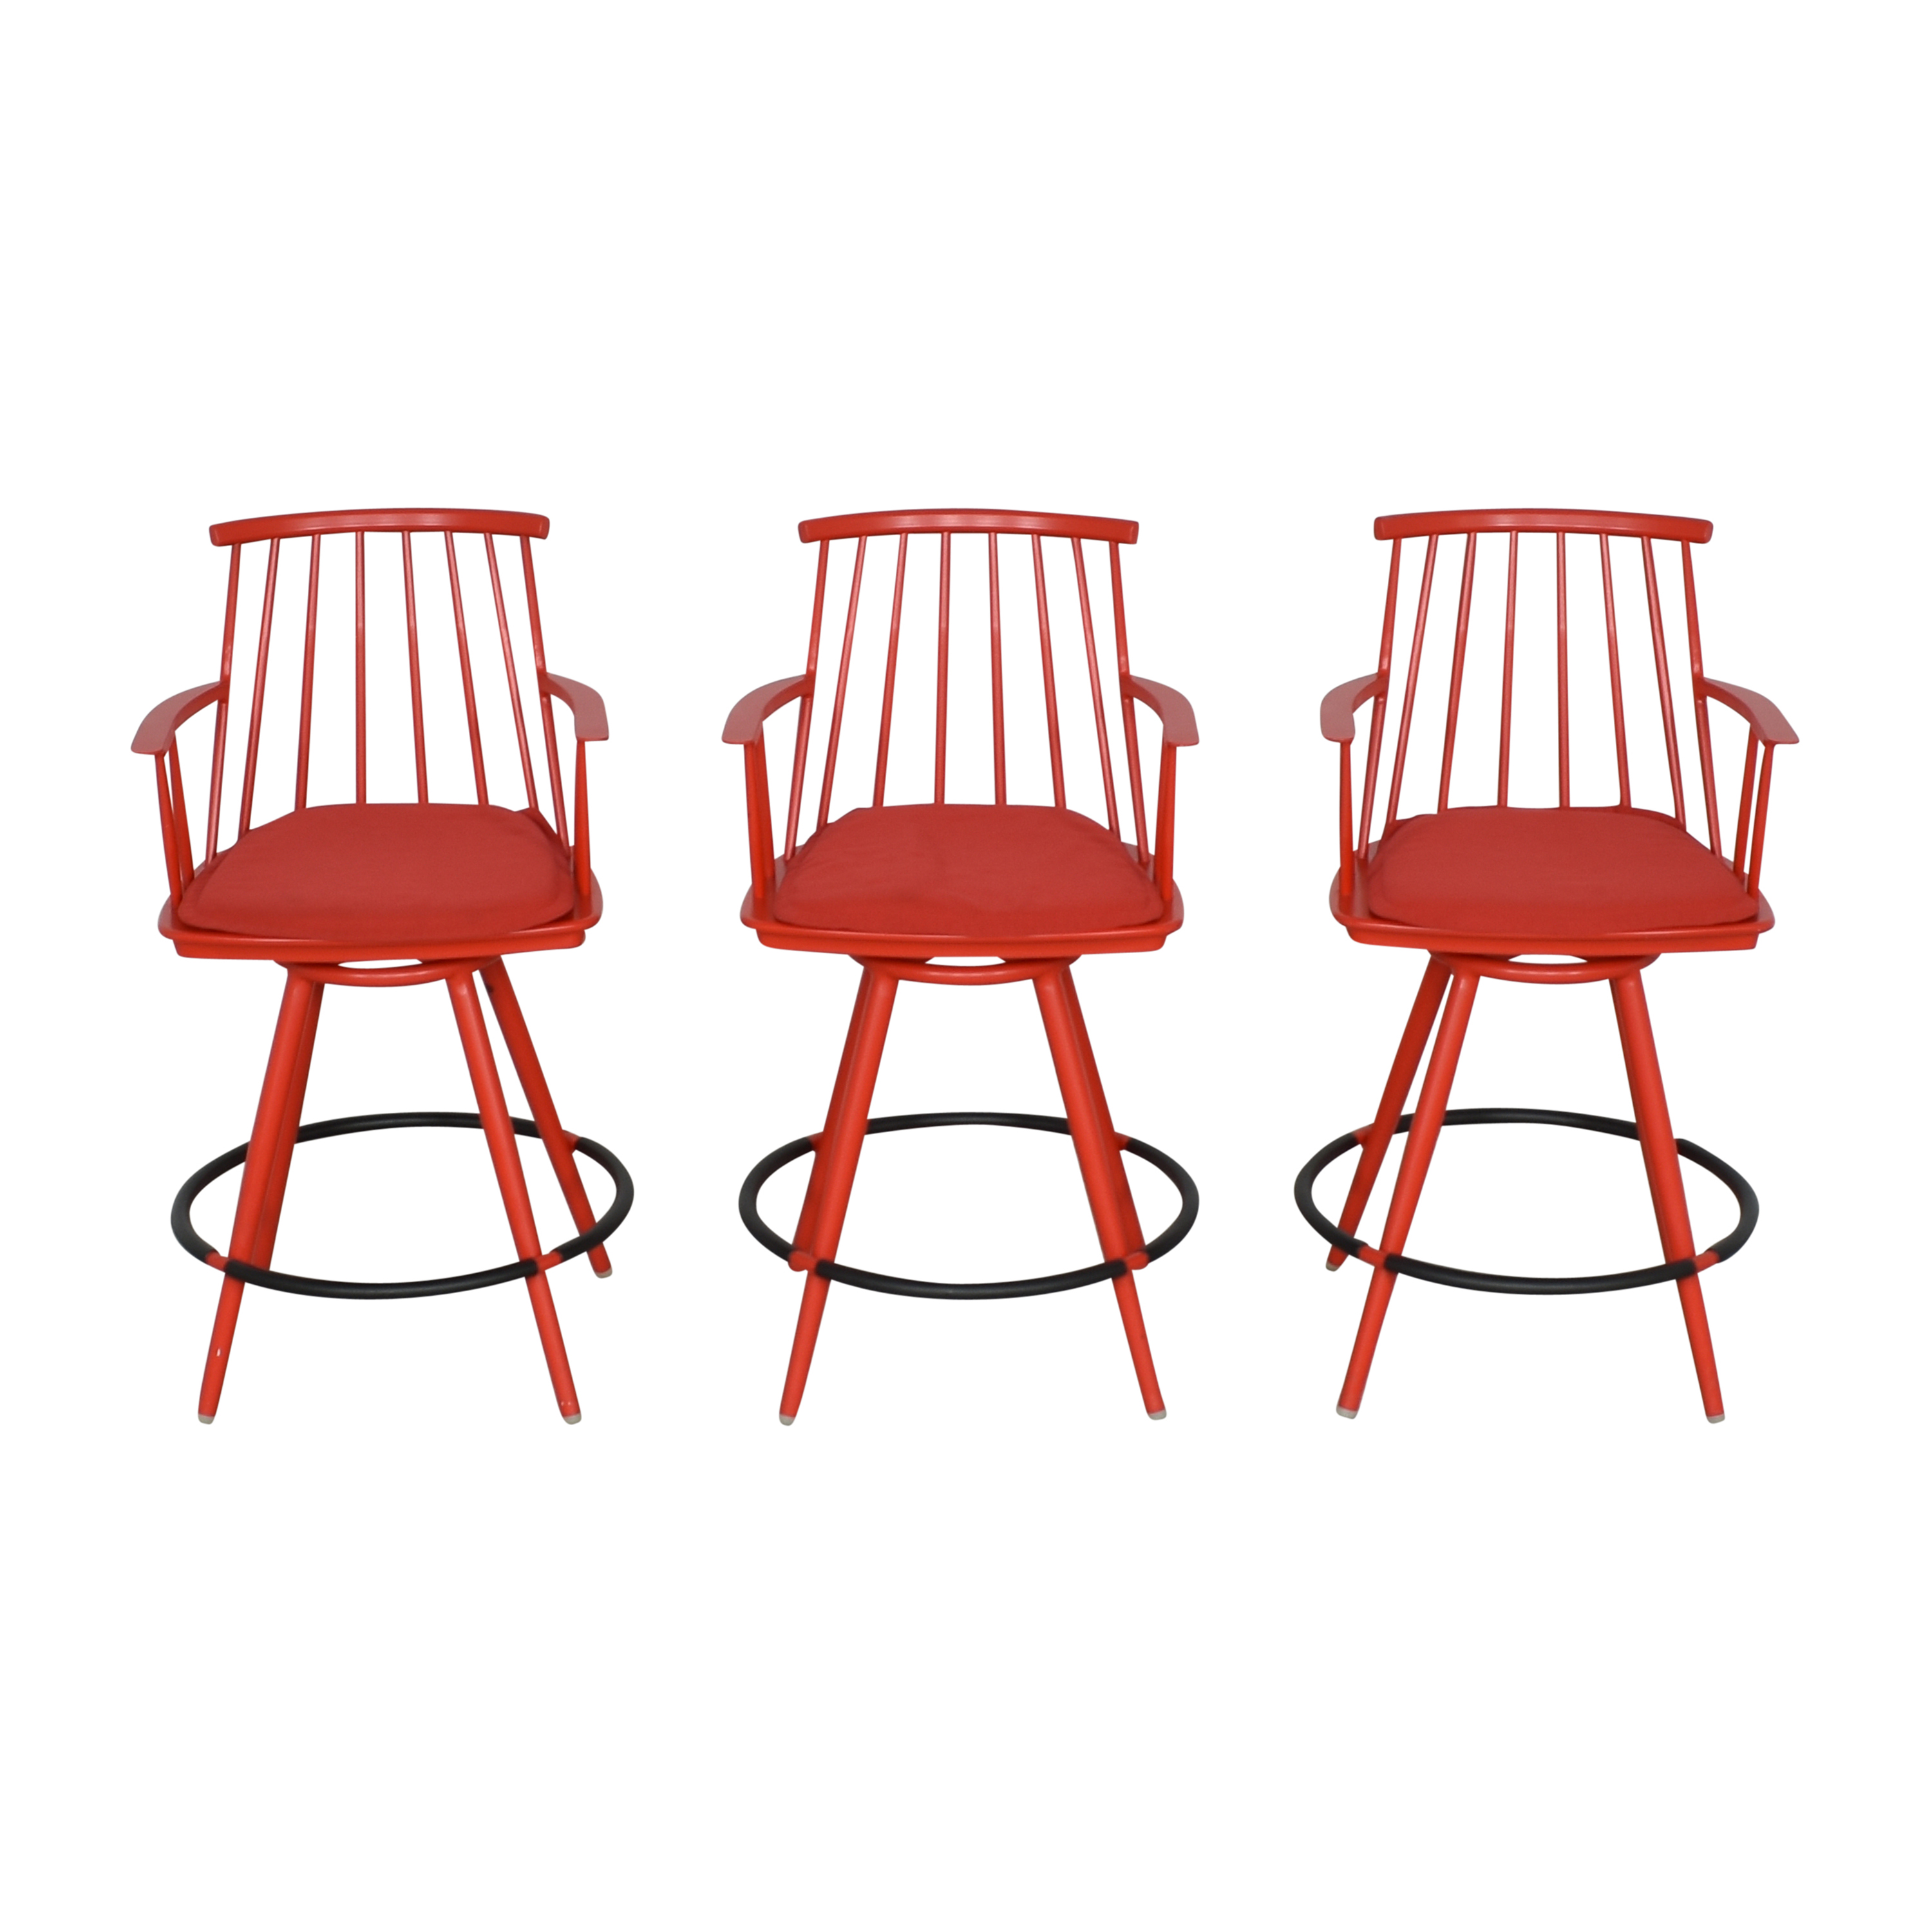 buy Crate & Barrel Crate & Barrel Union Swivel Counter Stools with Cushions online